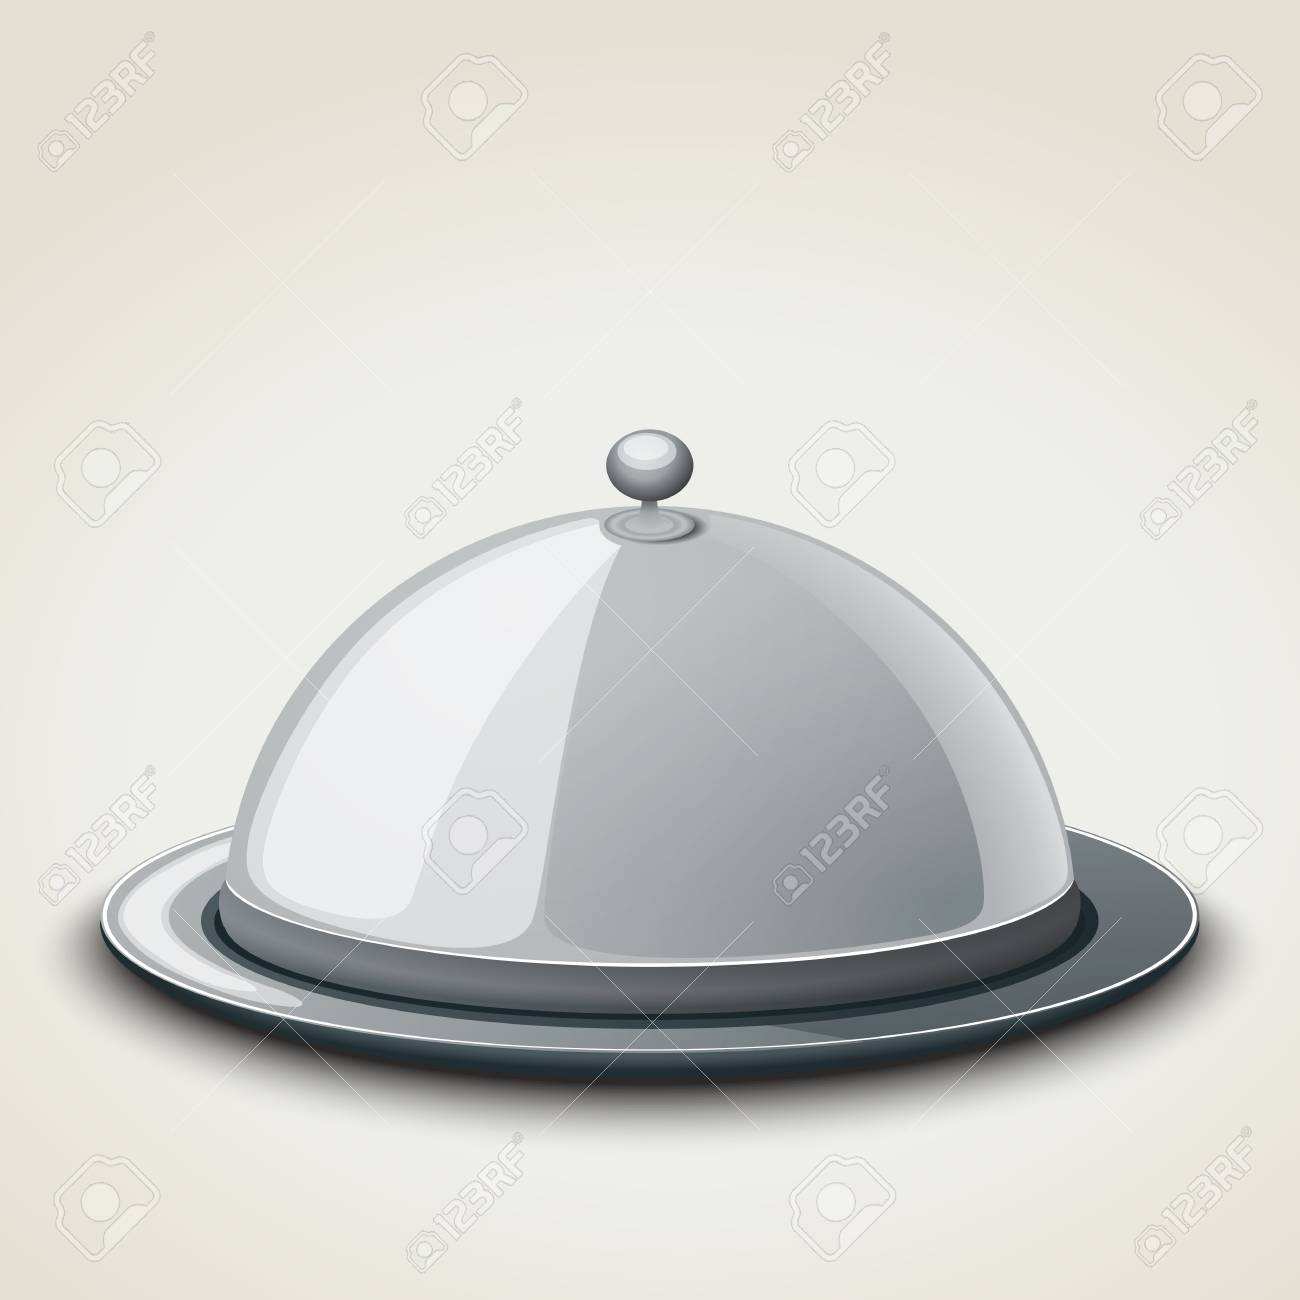 Grey Kitchen Tray For Restaurant, Icon, Isolated On White. Vector ...